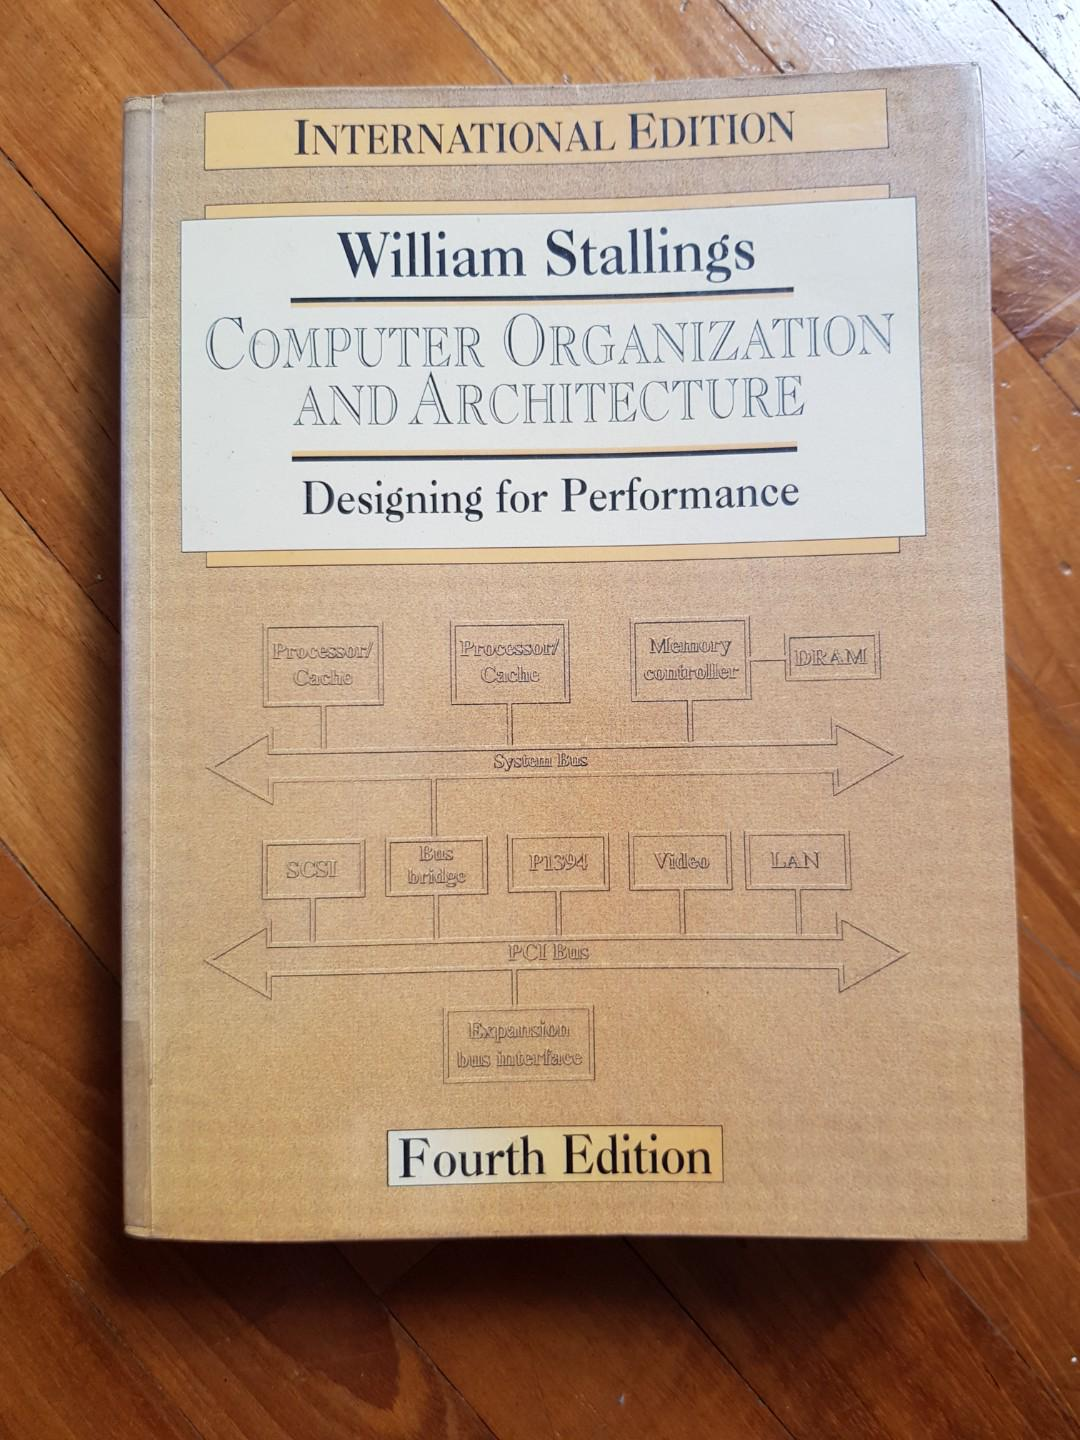 Computer Organization And Architecture Design For Performance Books Stationery Textbooks Tertiary On Carousell